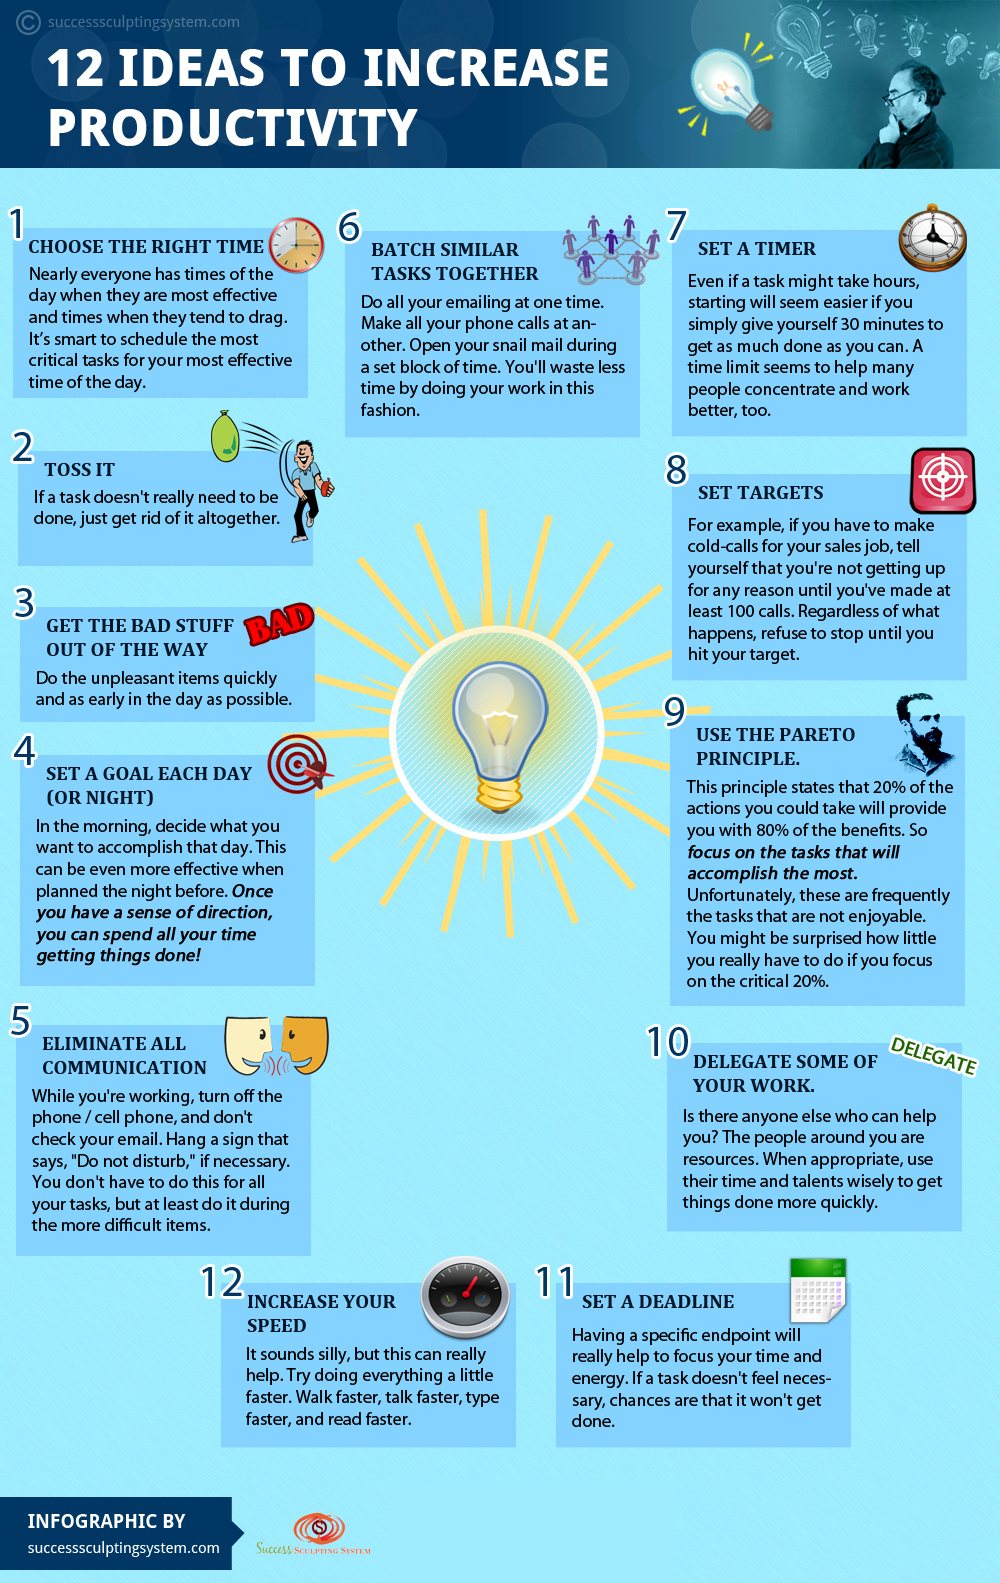 10 Tips for Improving Productivity